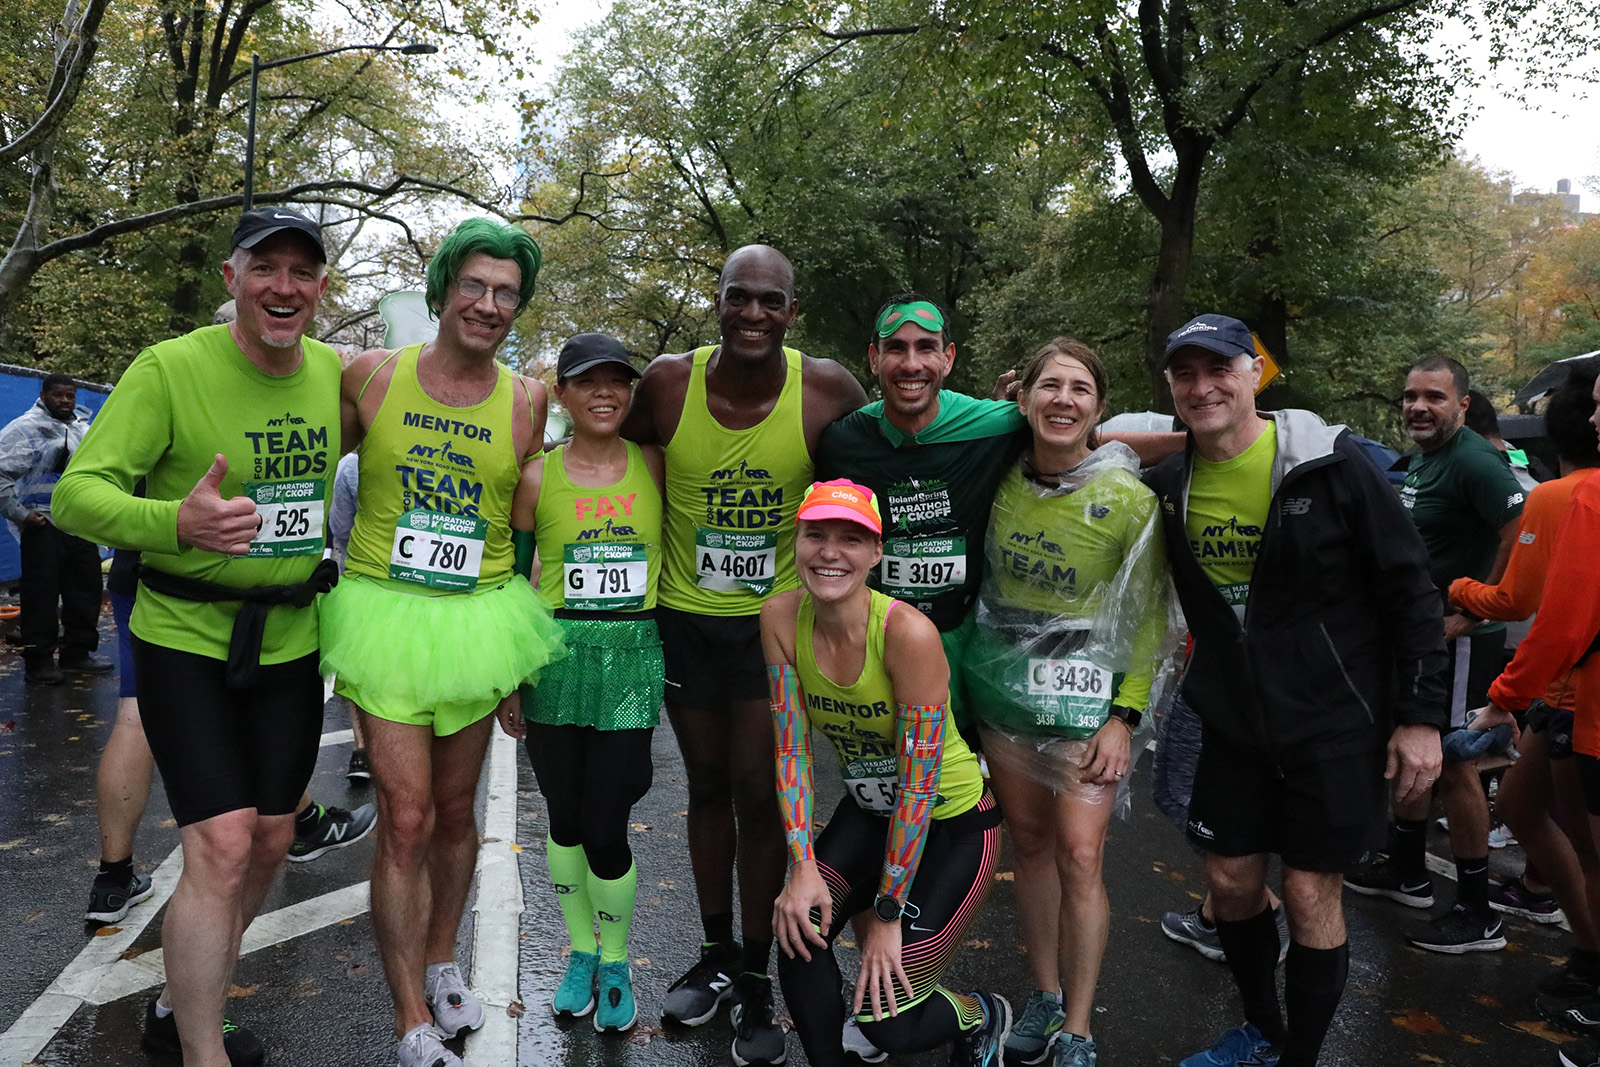 Team for Kids runners at the Poland Spring 5M finish line